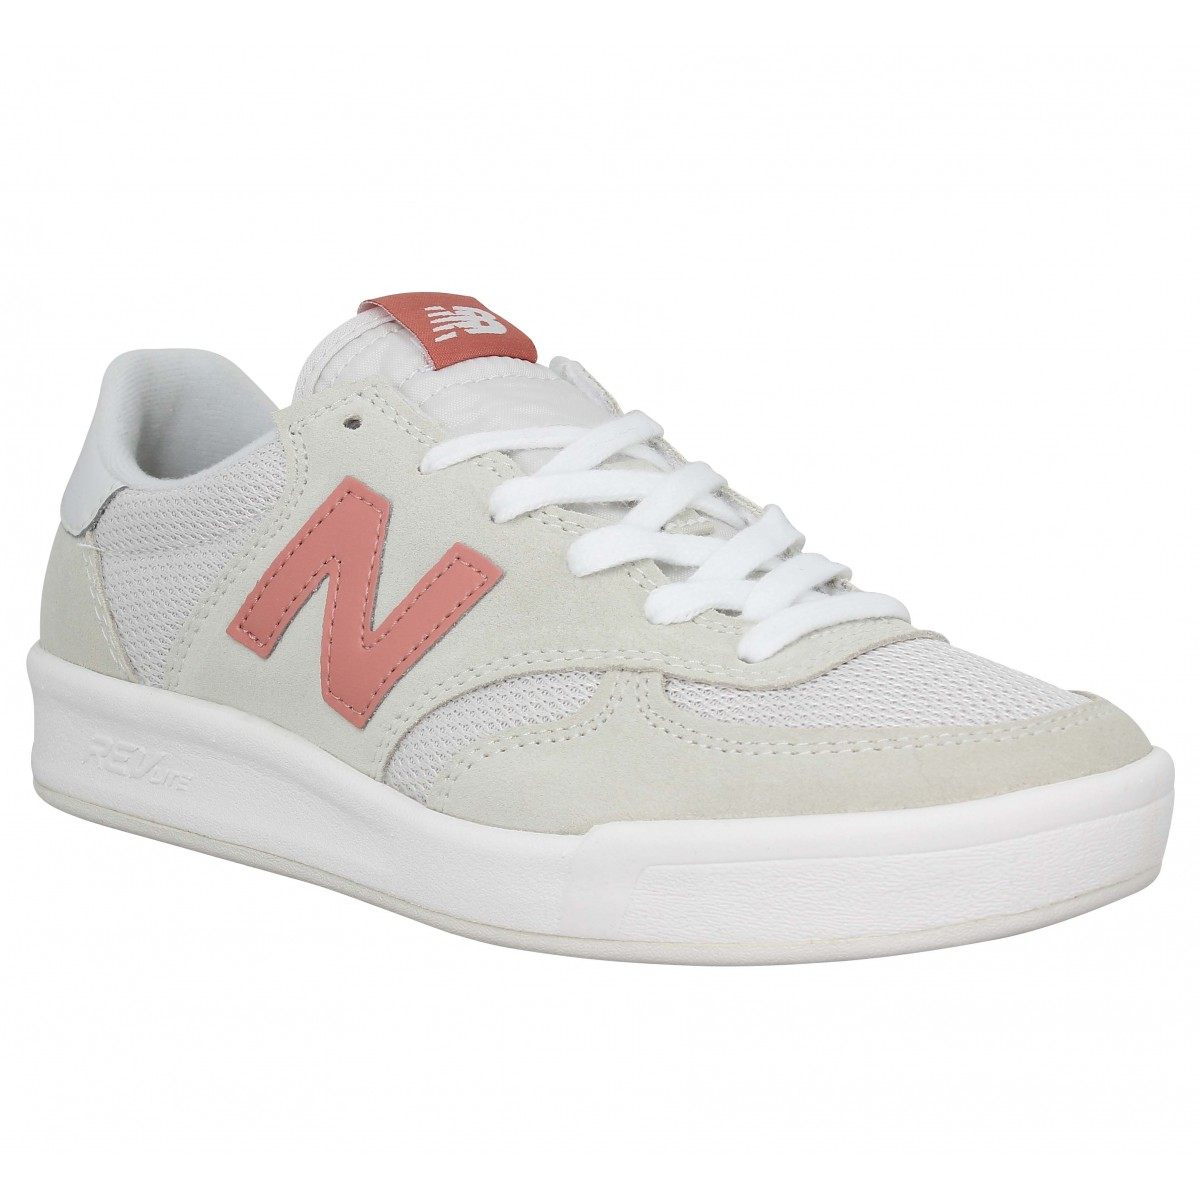 Baskets NEW BALANCE WRT300 velours toile Femme Blanc